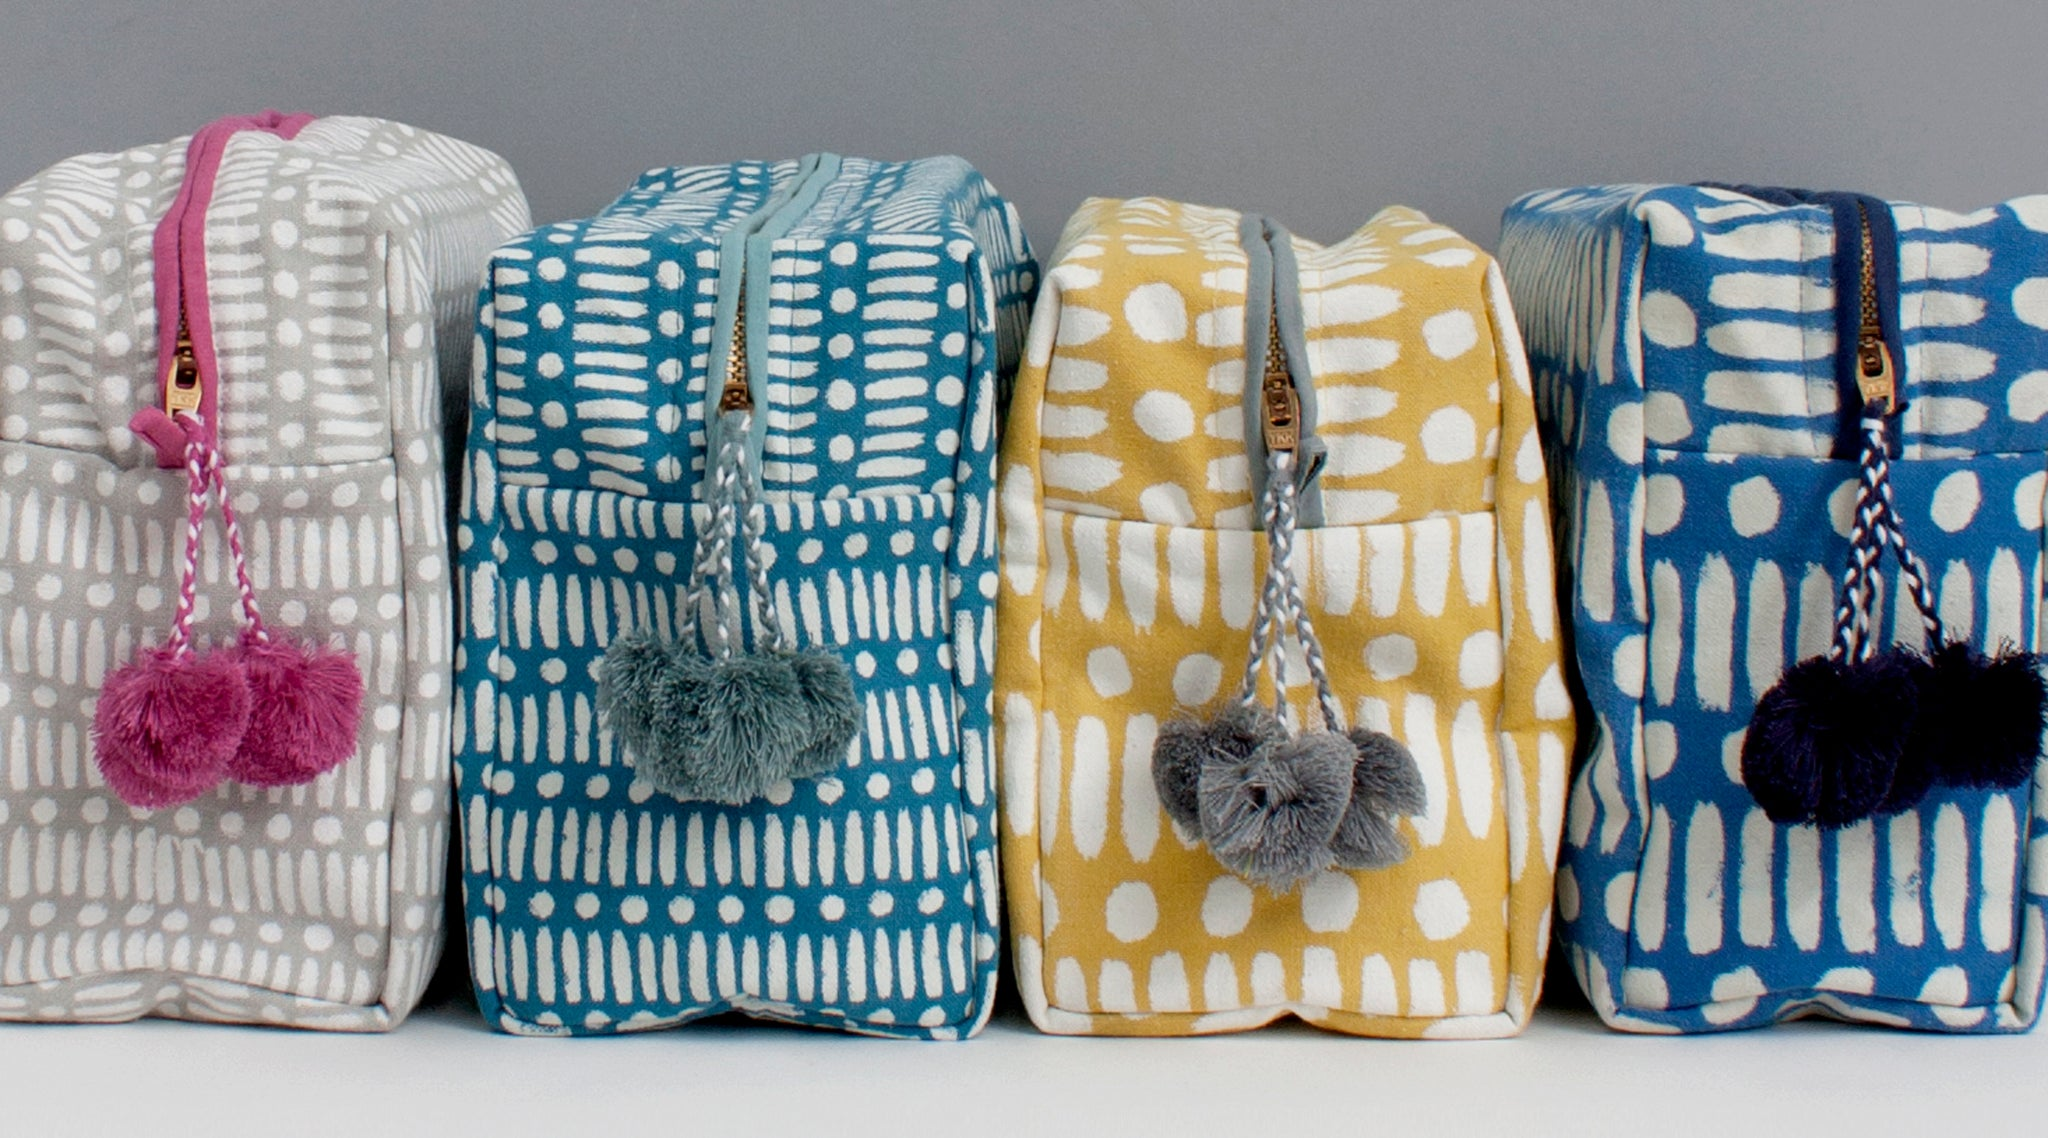 Bohemia Block Printed Washbags